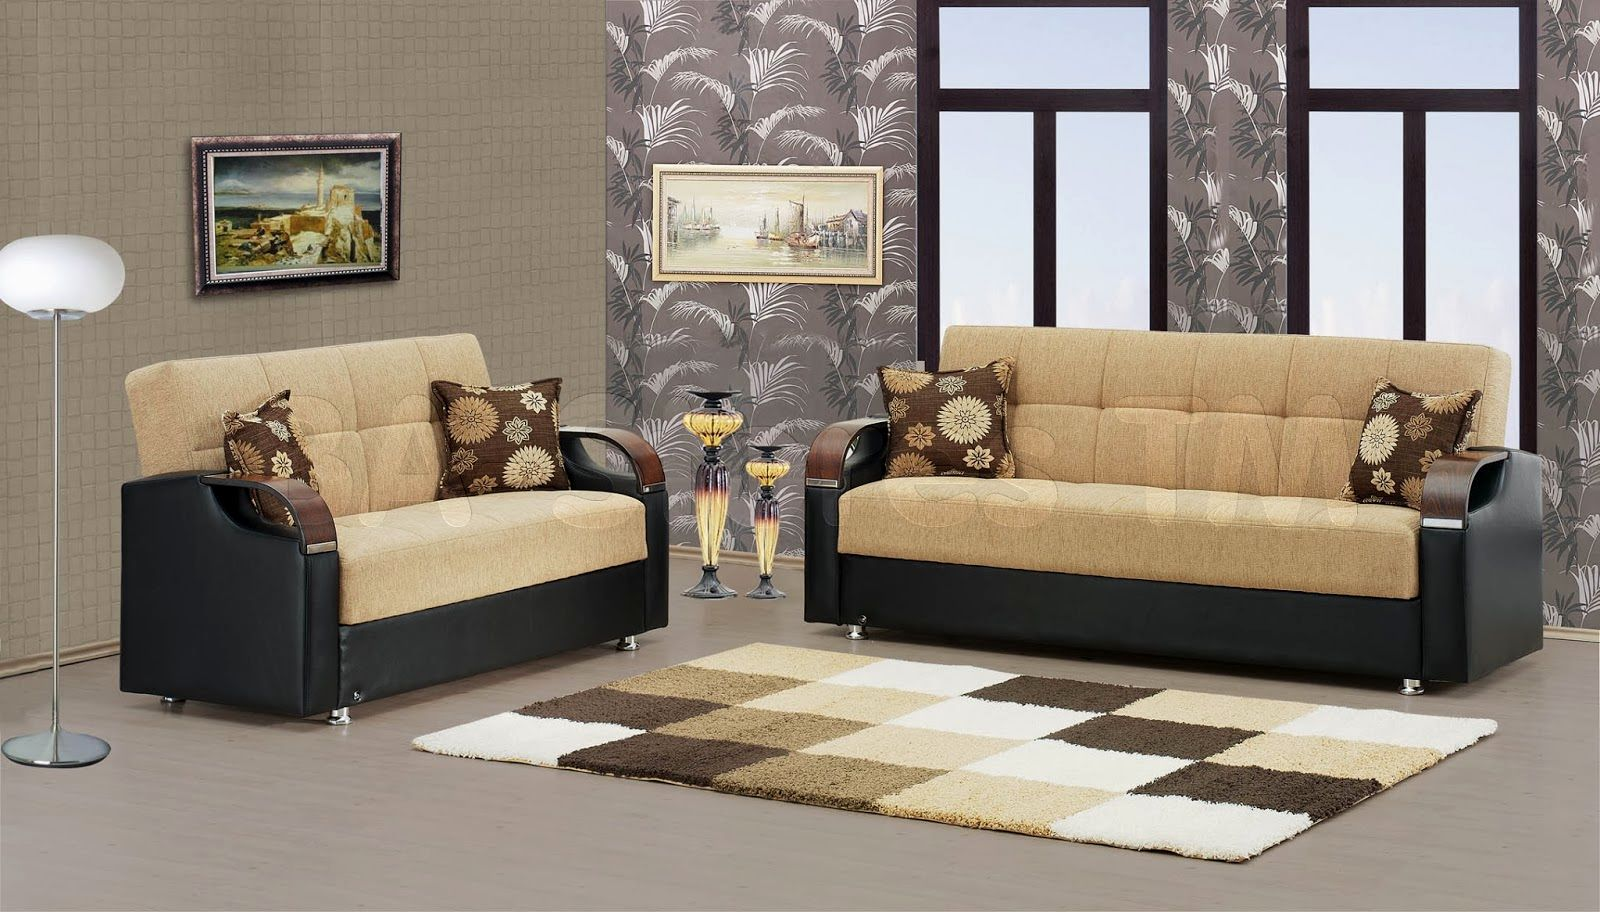 luxury cb2 leather sofa gallery-Contemporary Cb2 Leather sofa Layout